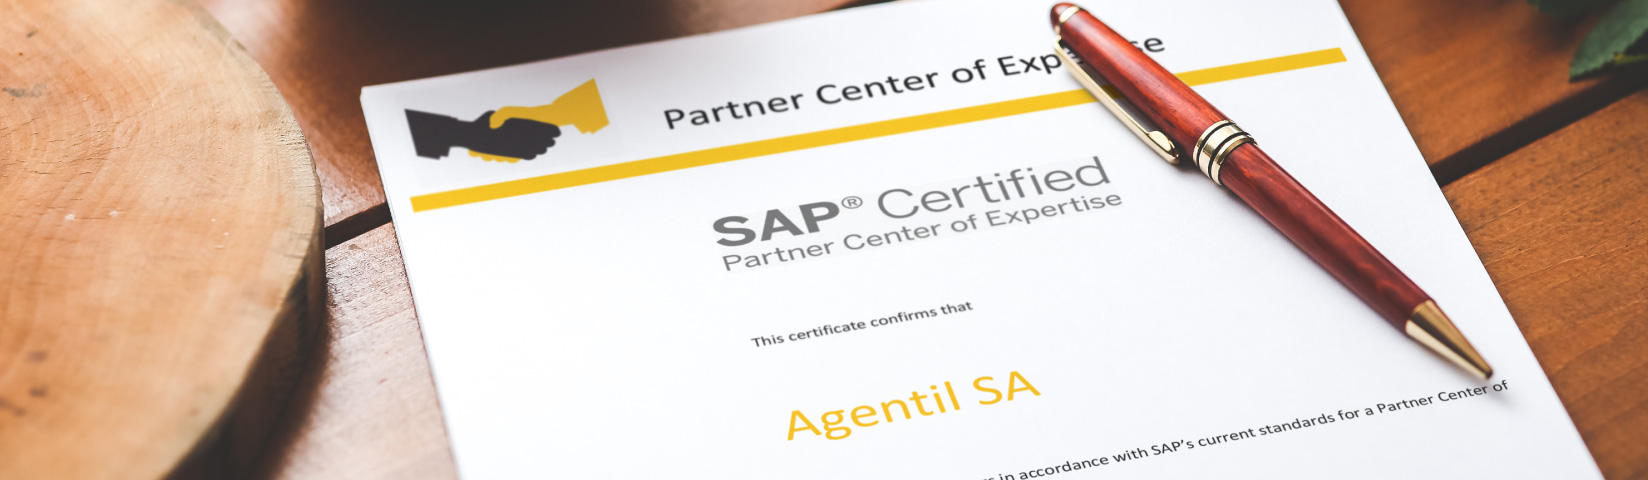 AGENTIL, first company to obtain automatic renewal of SAP PCoE in French-speaking Switzerland